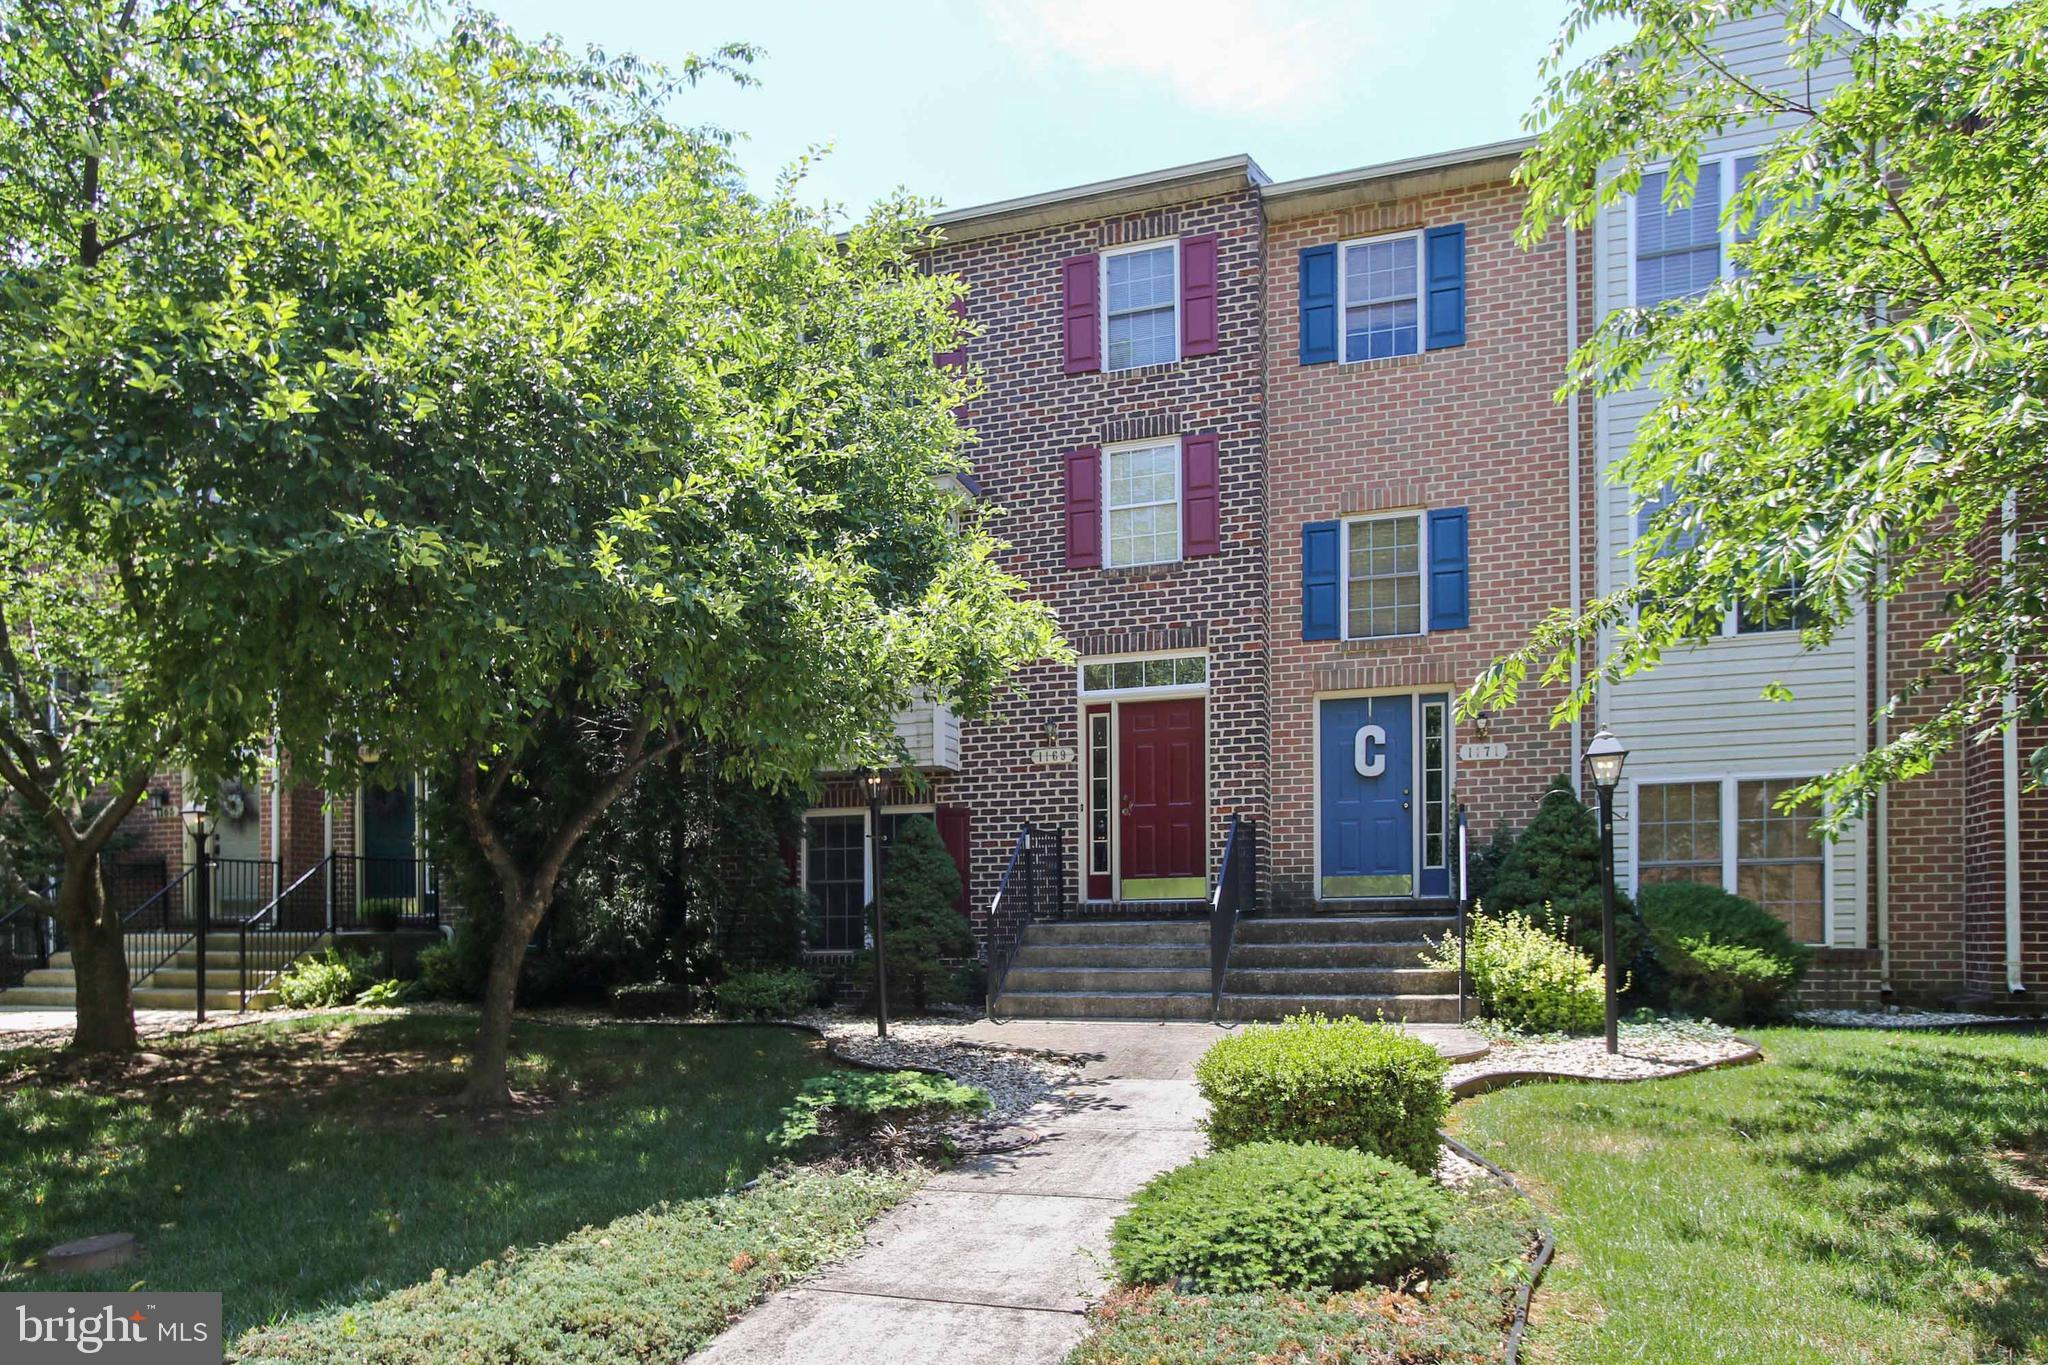 1169 Lindsay Ln, Hagerstown, MD, 21742